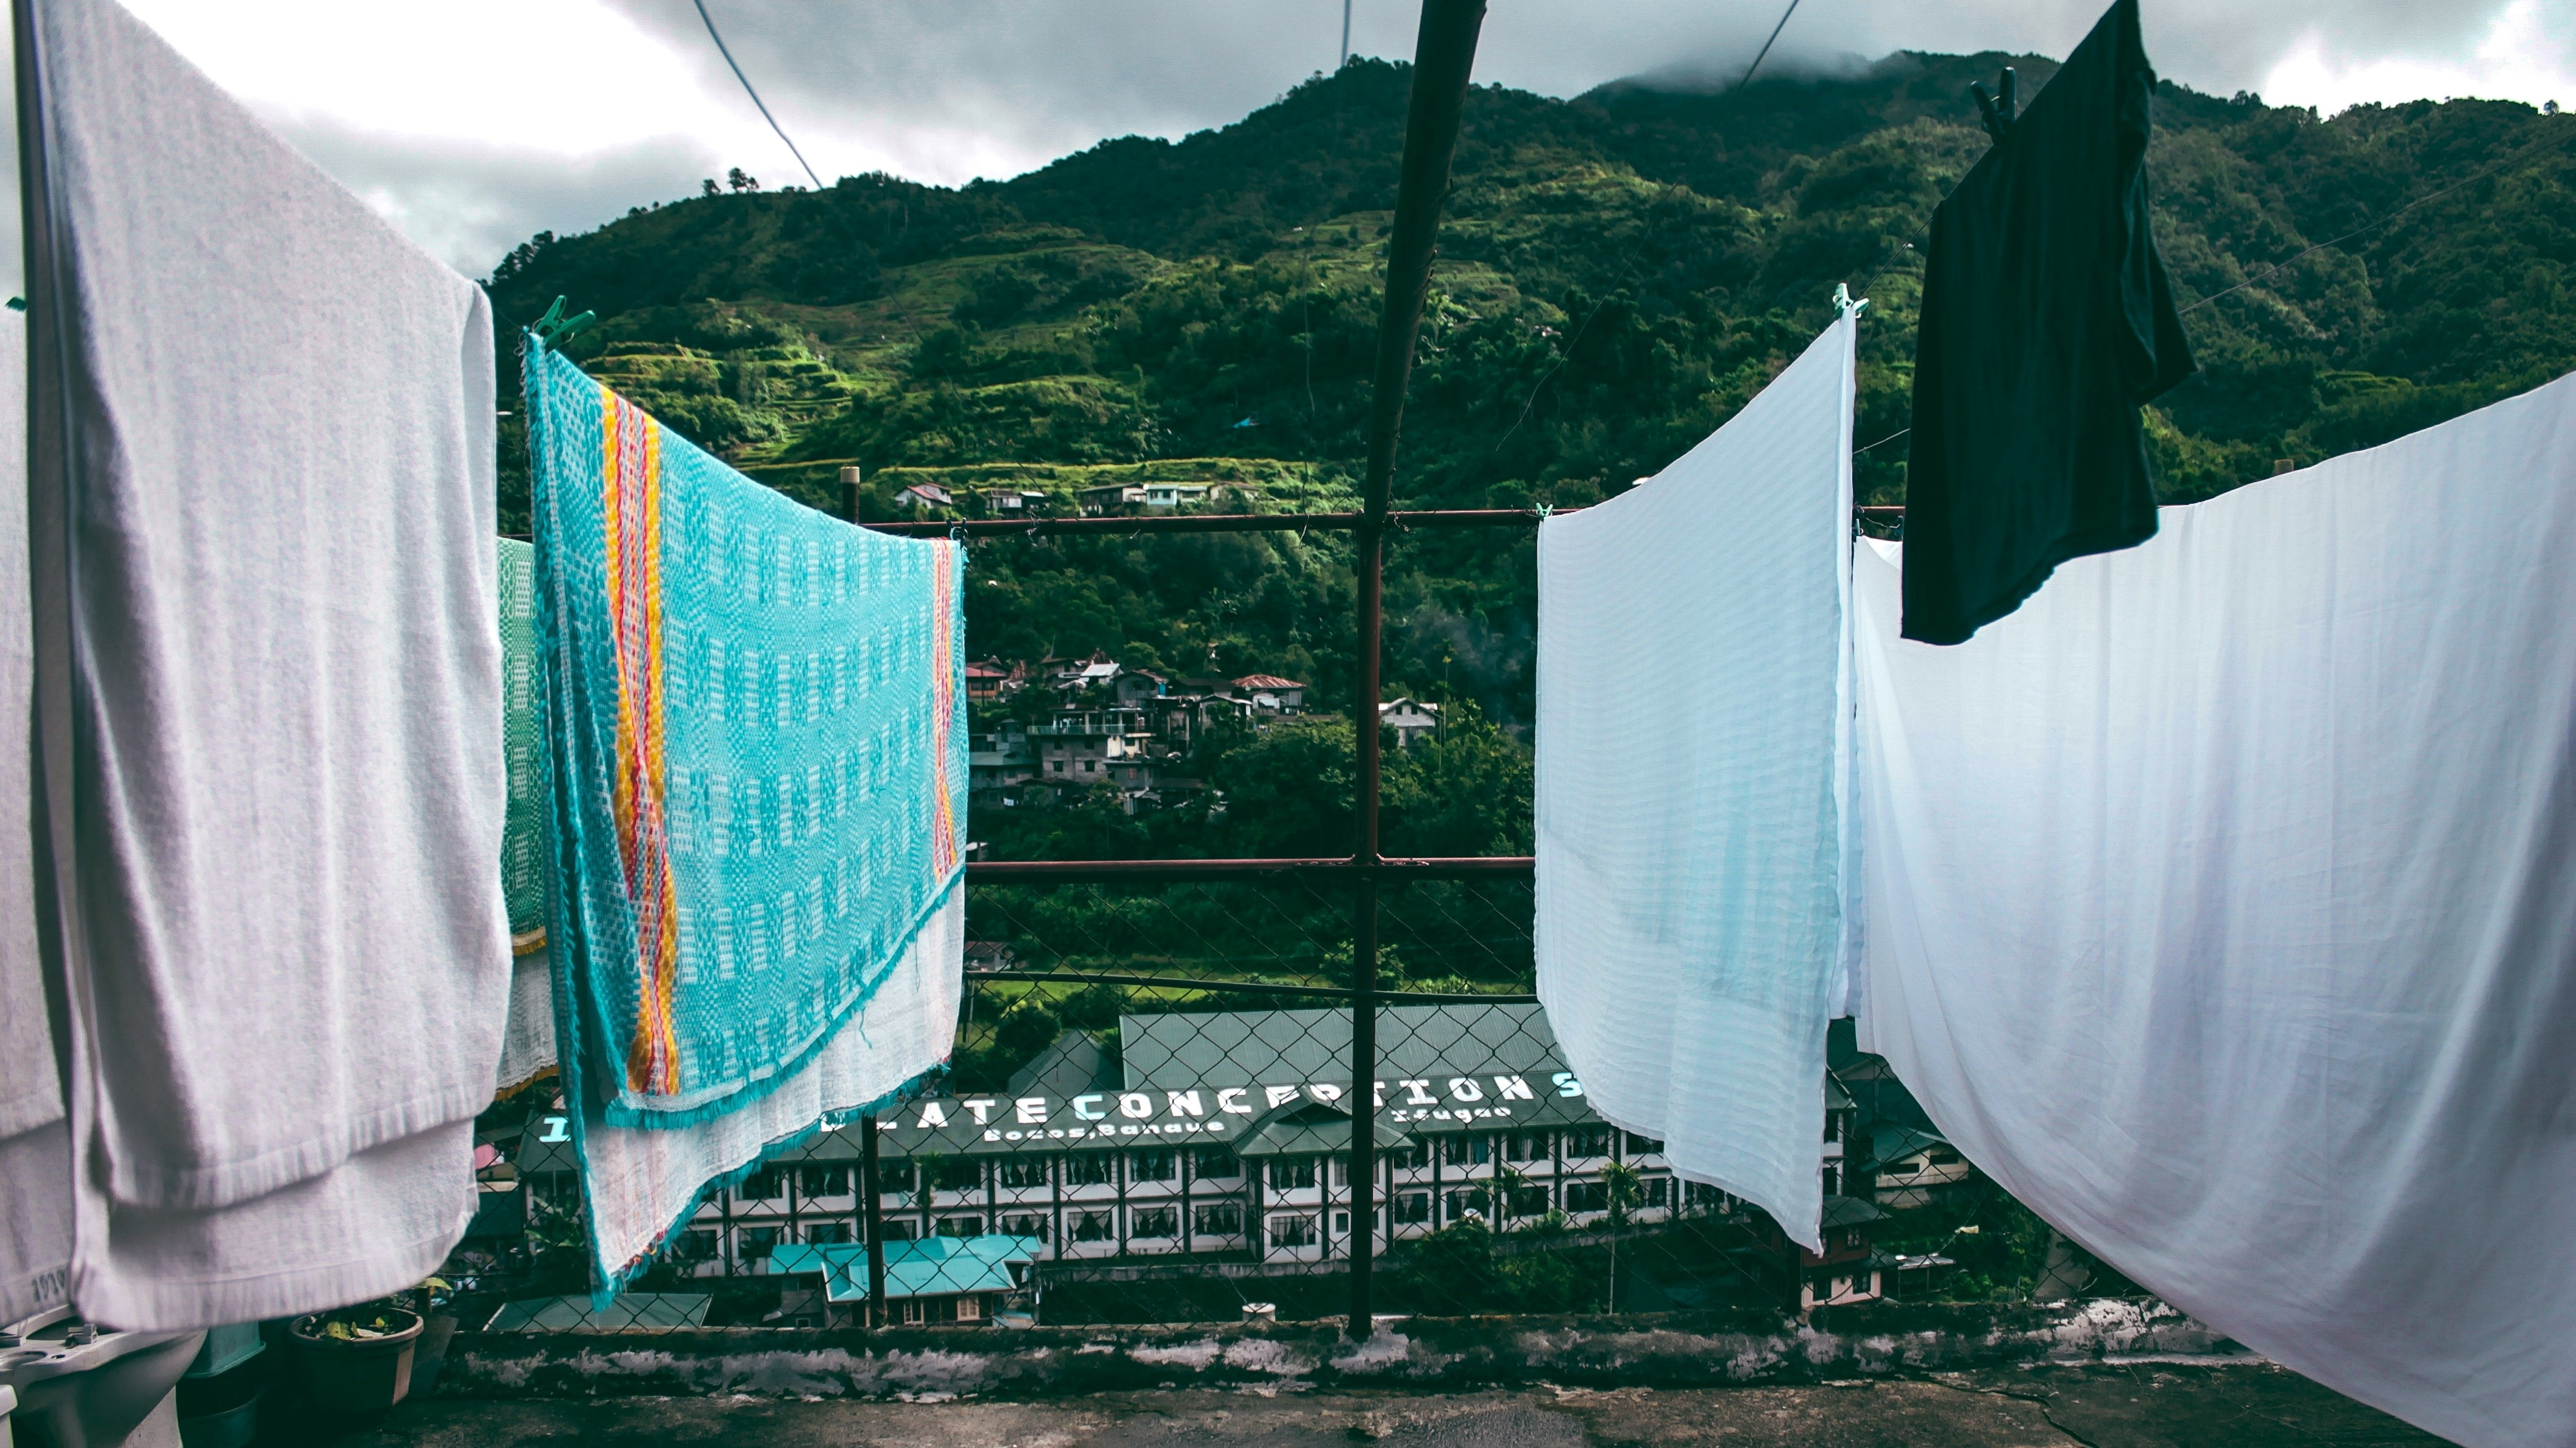 Forested mountains against the background of a stormy sky. Towels hang to dry in the foreground on a rooftop.